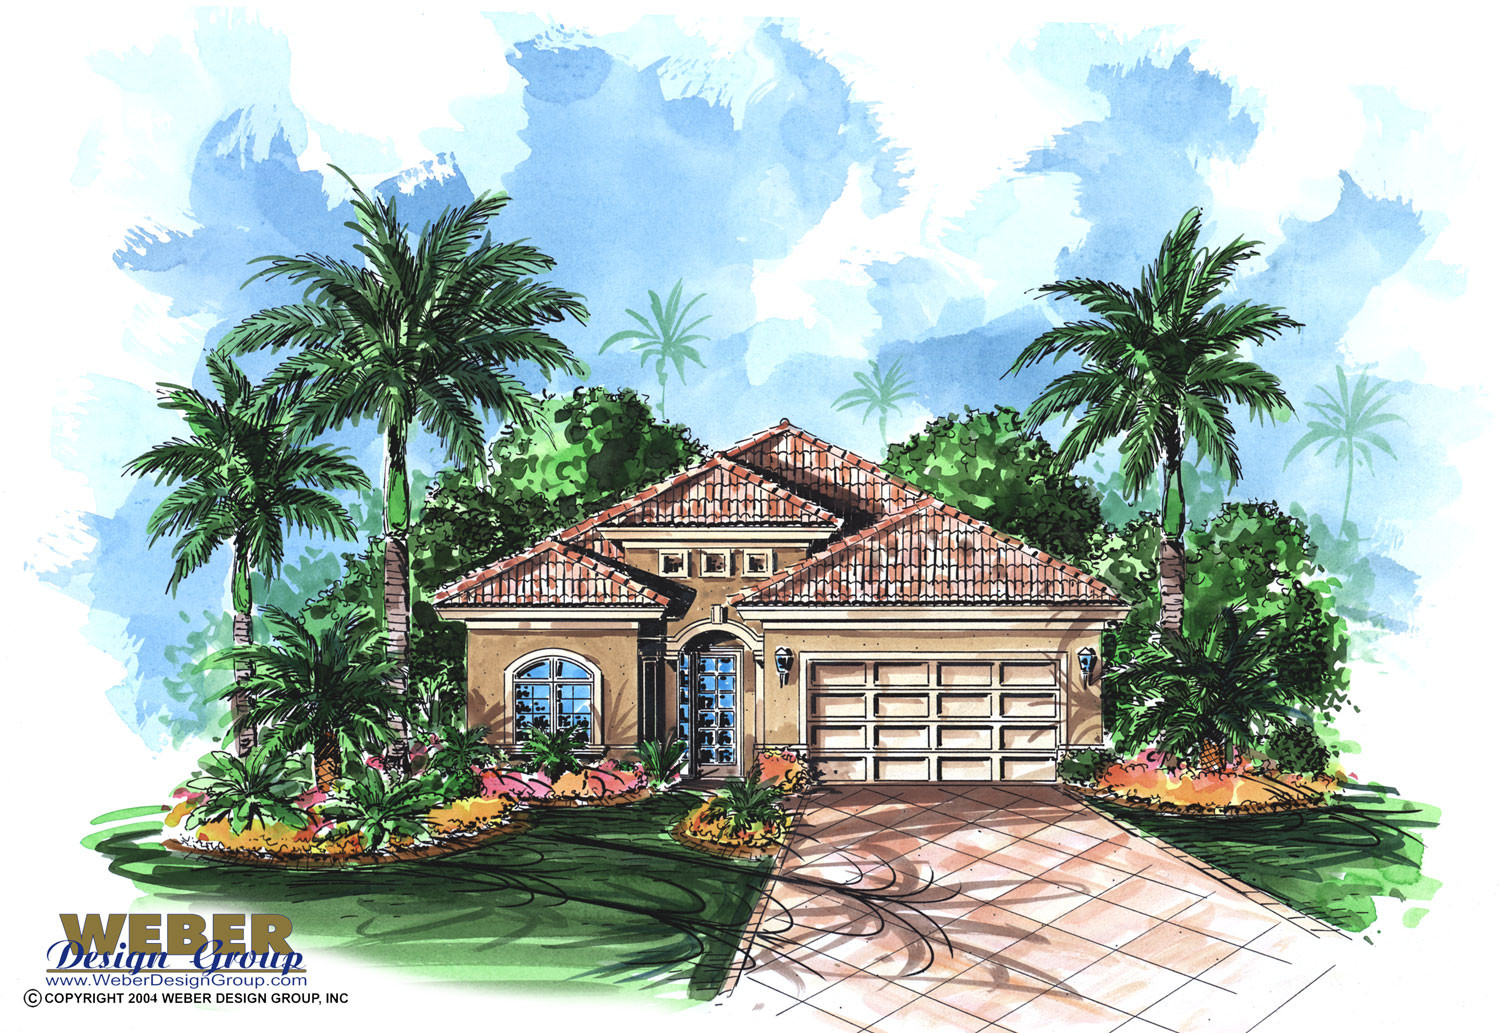 Small Mediterranean Bungalow House Plan for Golf Course Waterfront Lot